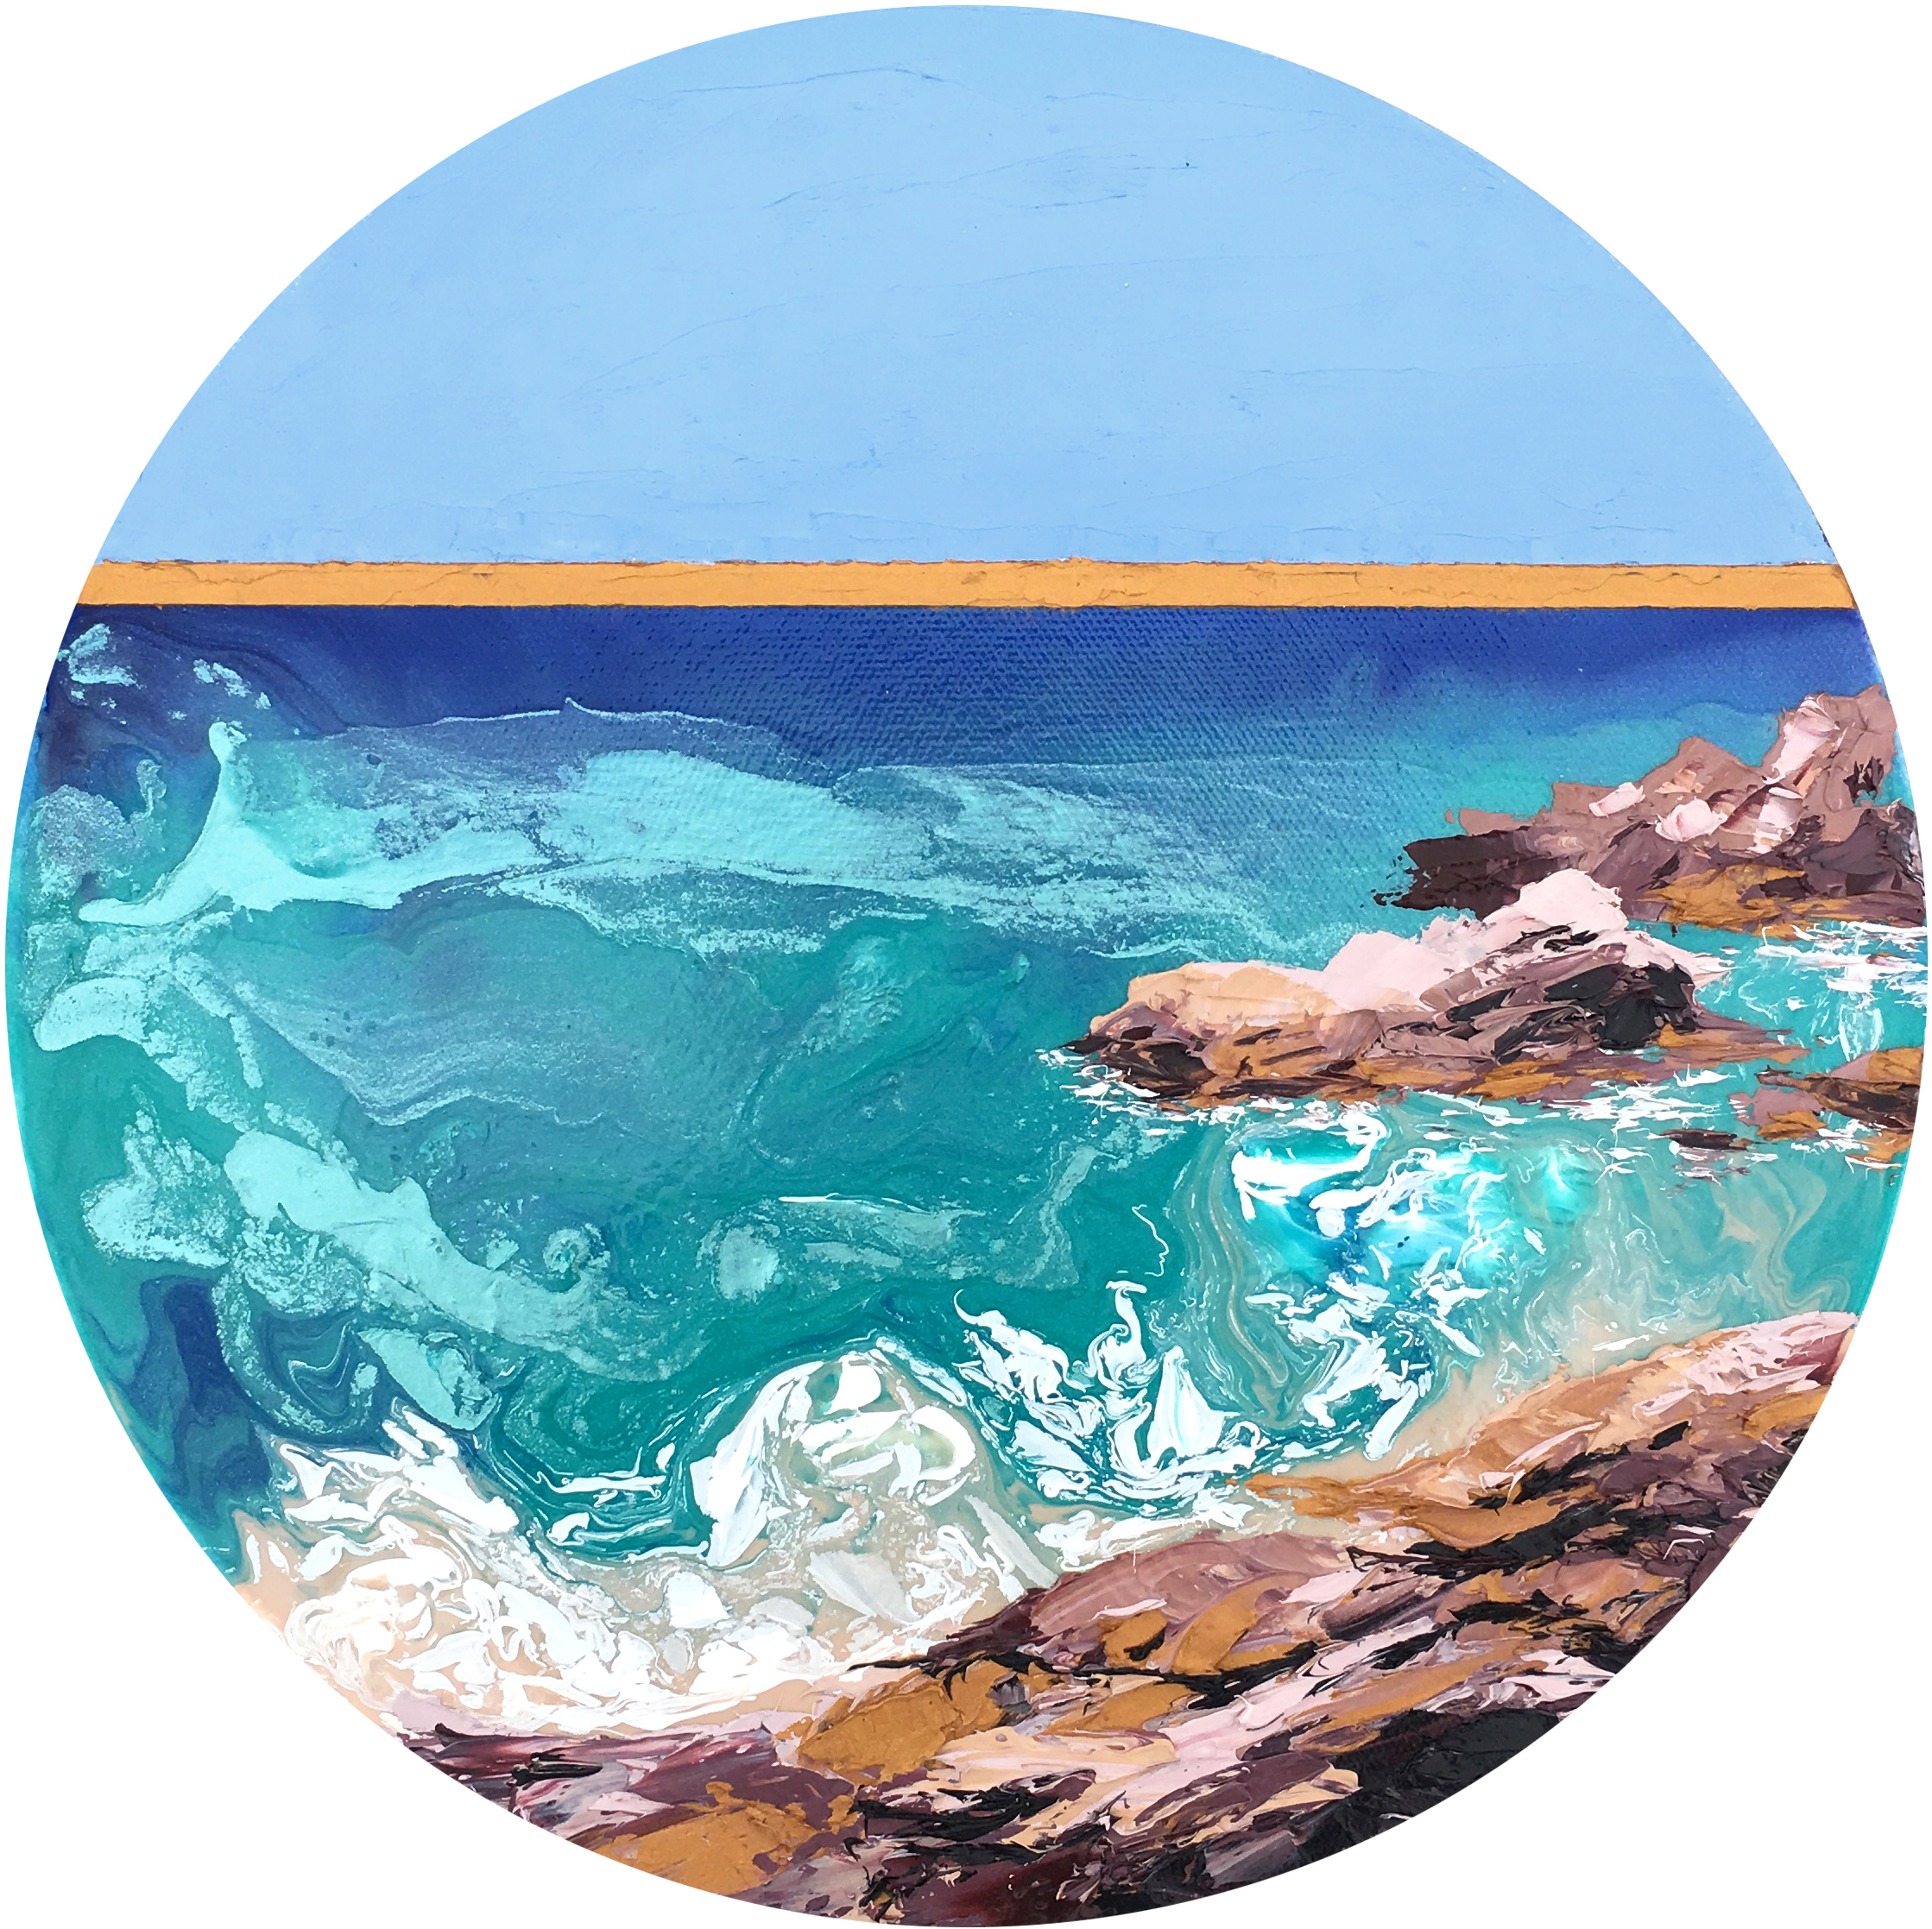 "Turquoise Sea, 10"" in diameter, mixed media, 2017"